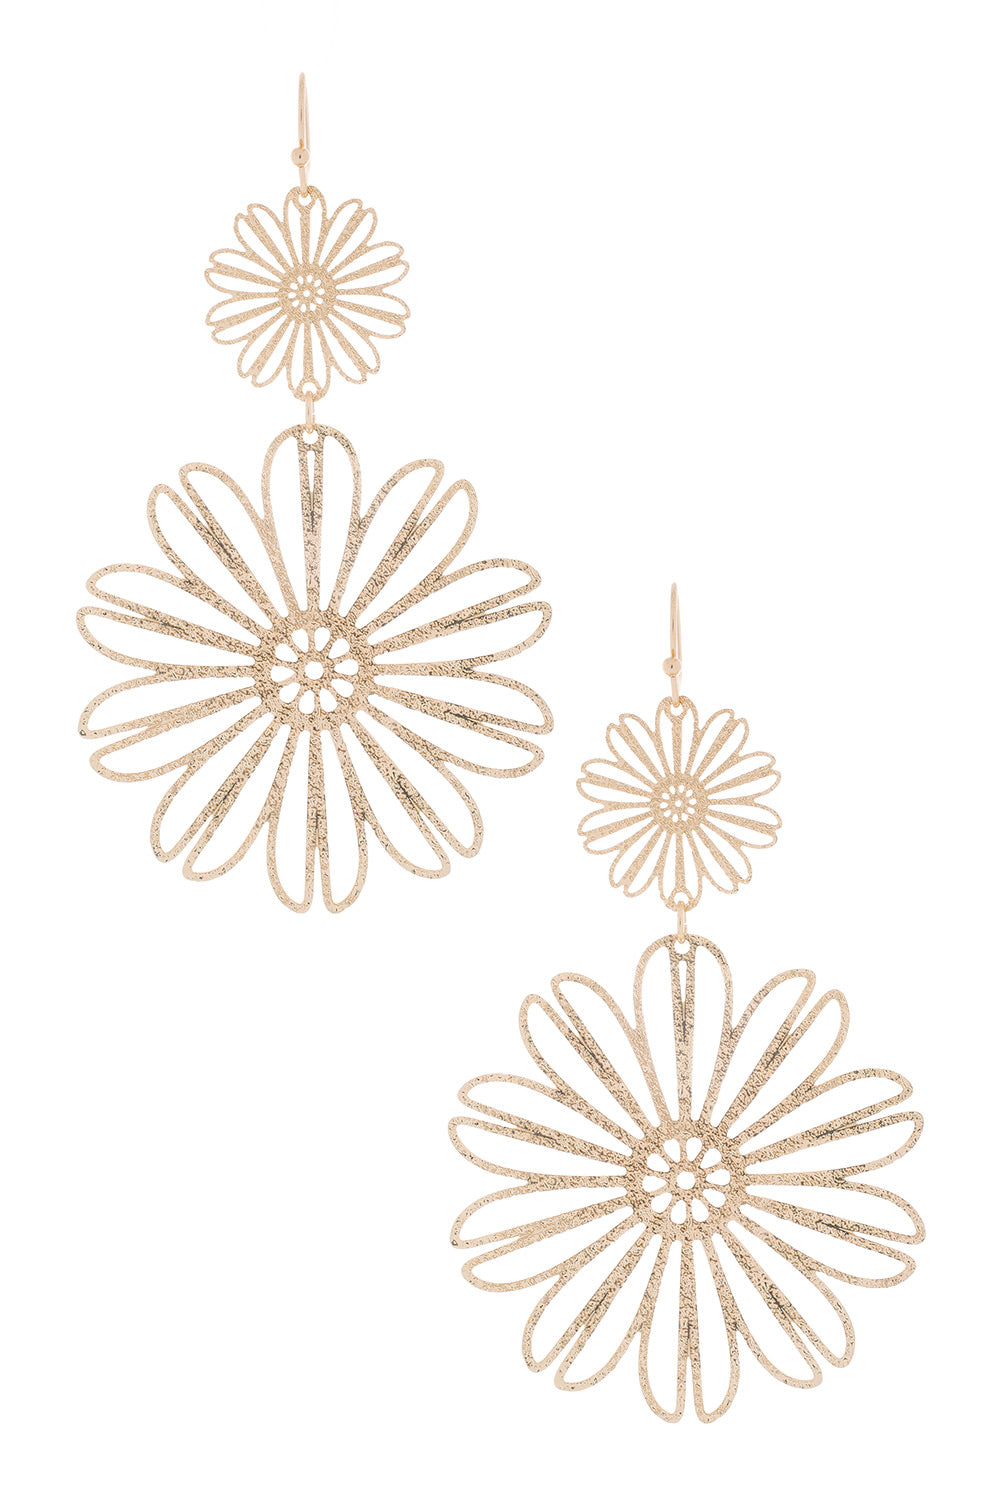 Type 1 Double Daisies Earrings